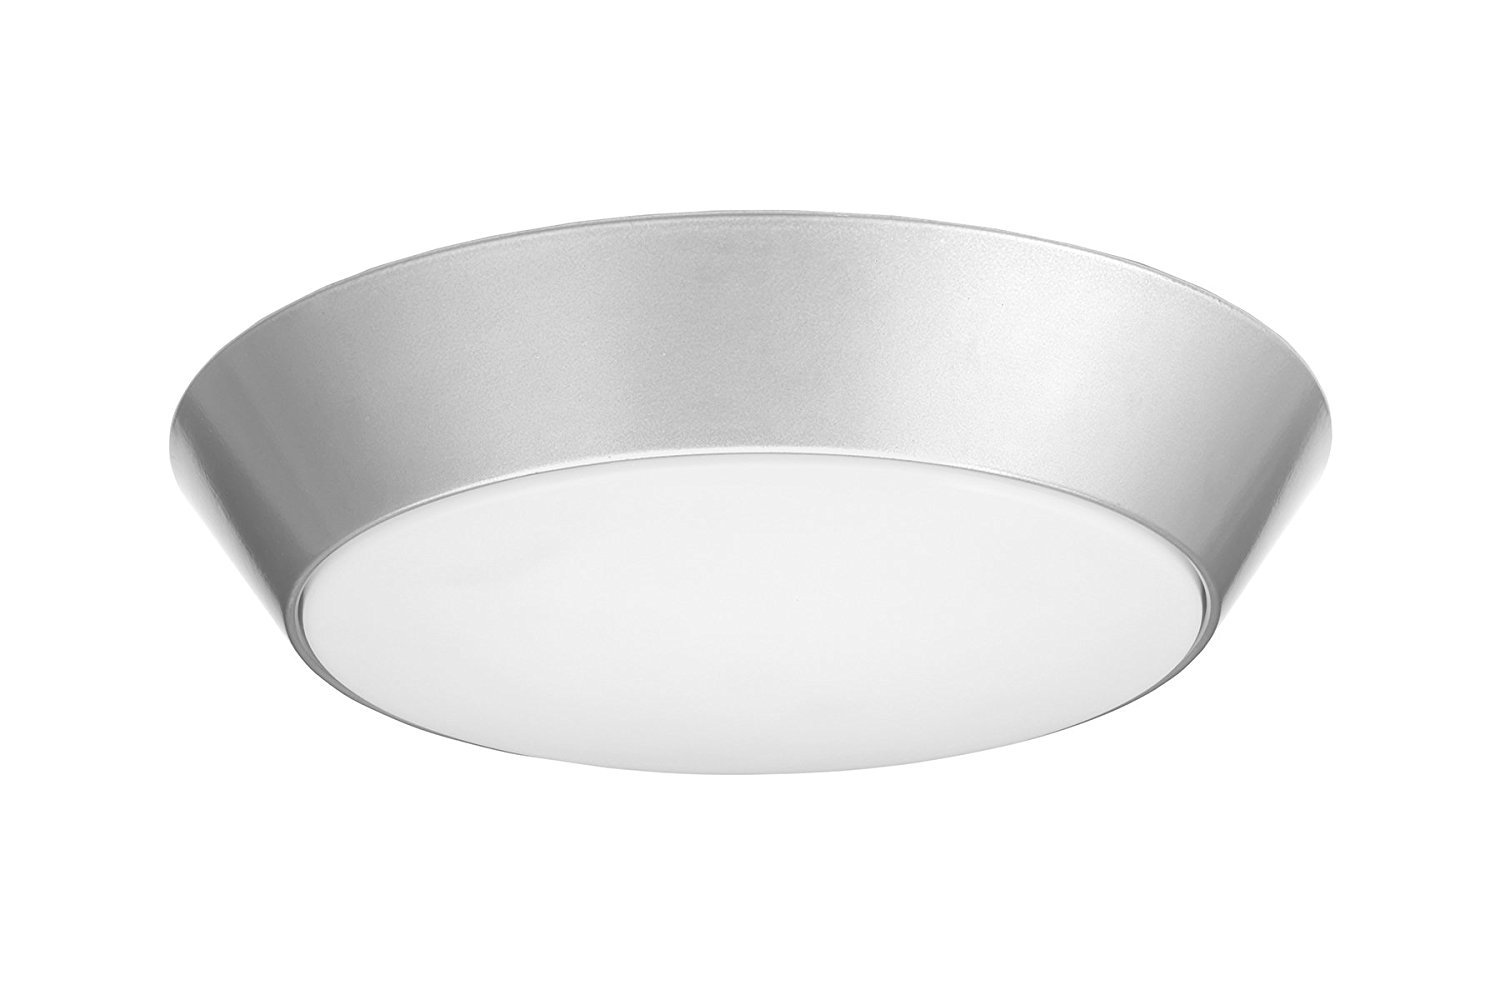 Lithonia Lighting 13 inch Round LED Flush Mount